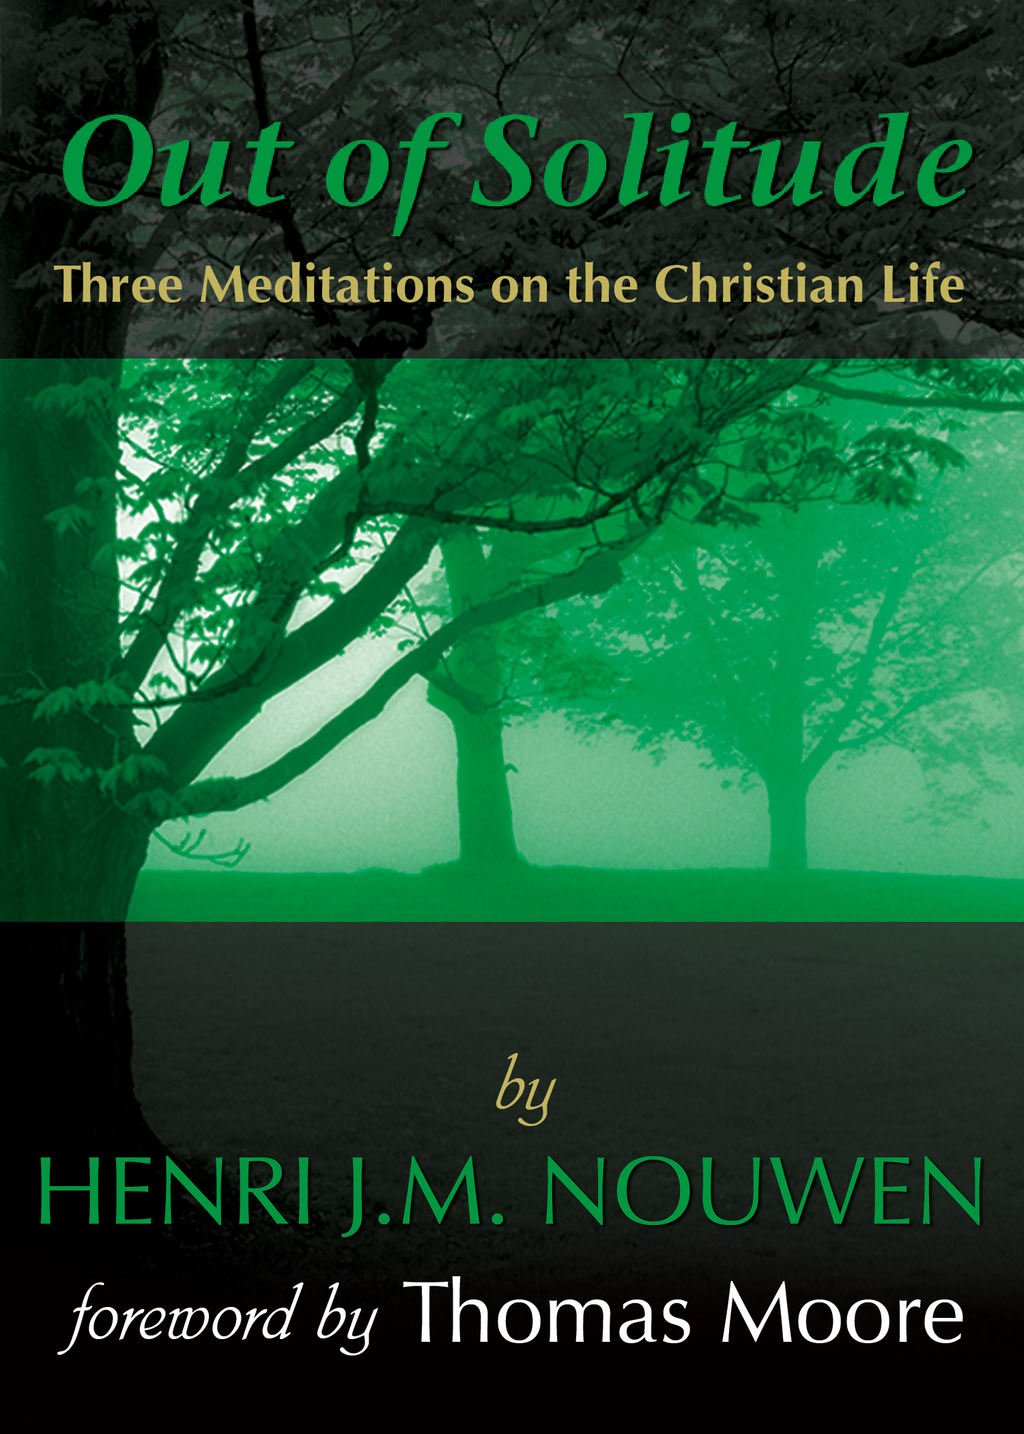 Out of Solitude: Three Meditations on the Christian Life By: Henri J. M. Nouwen